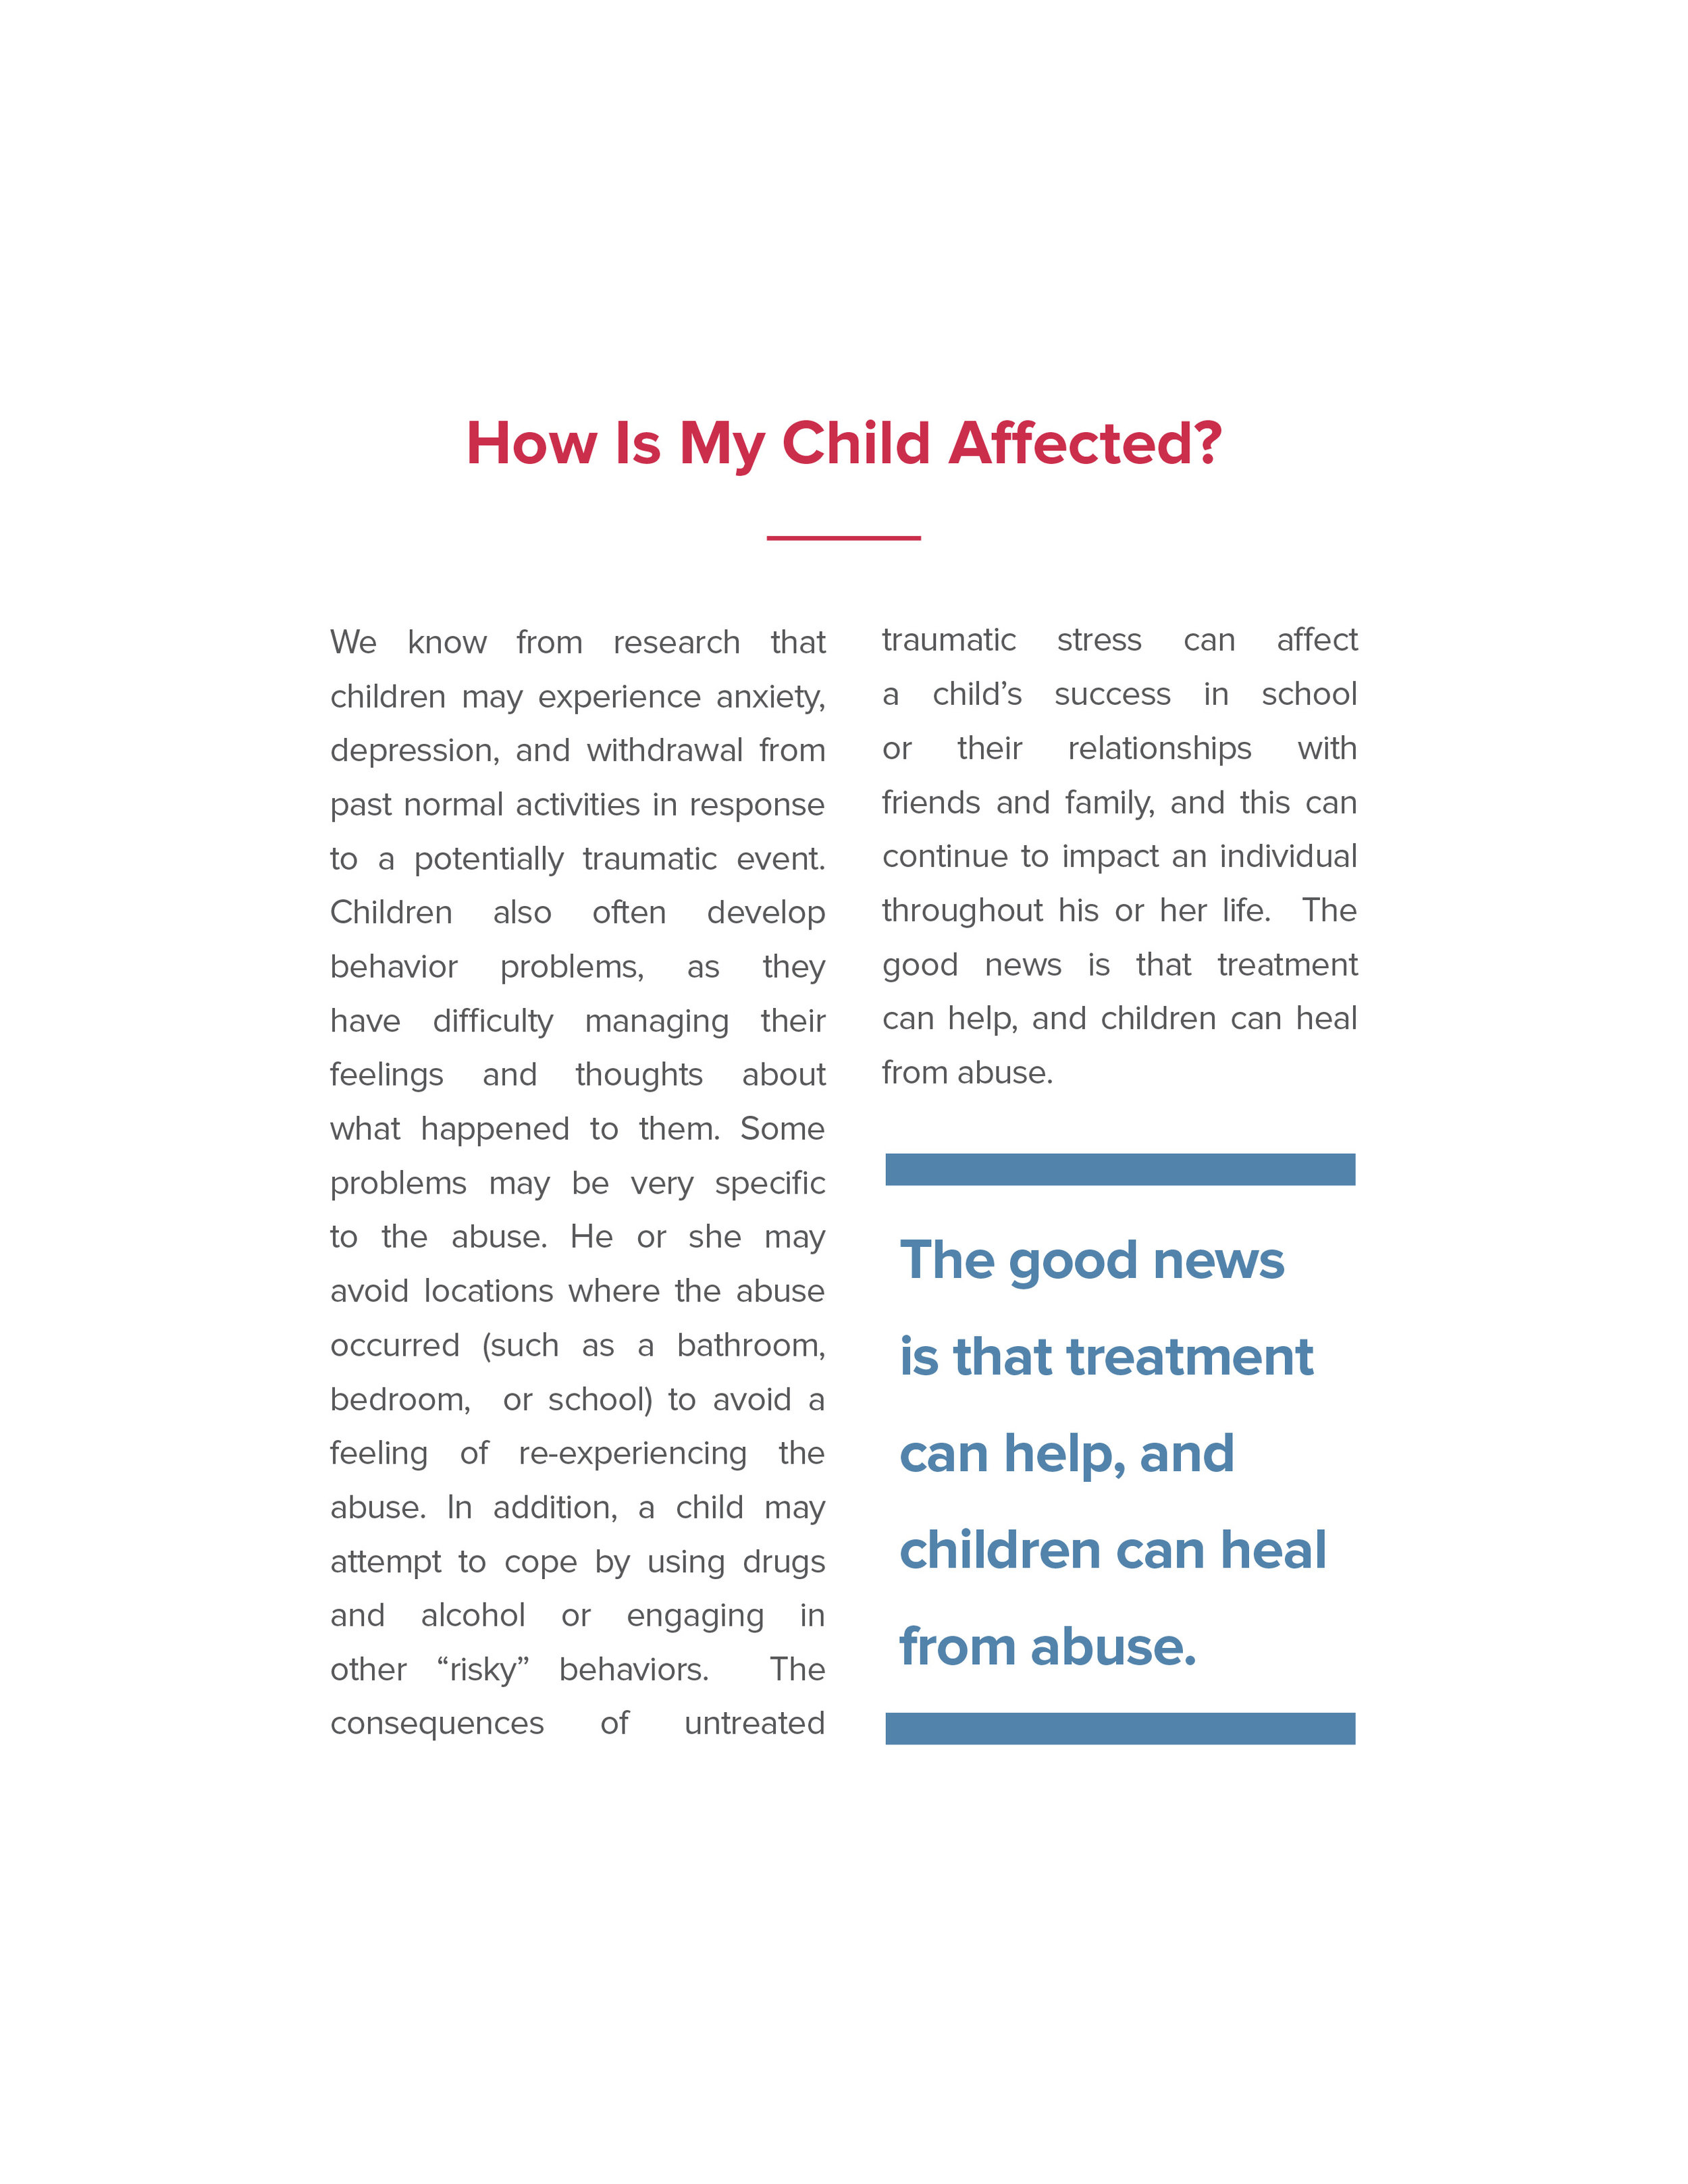 NCA Helping Your Children Heal From Abuse Brochure June2015 our logo-3 copy - Copy.jpg